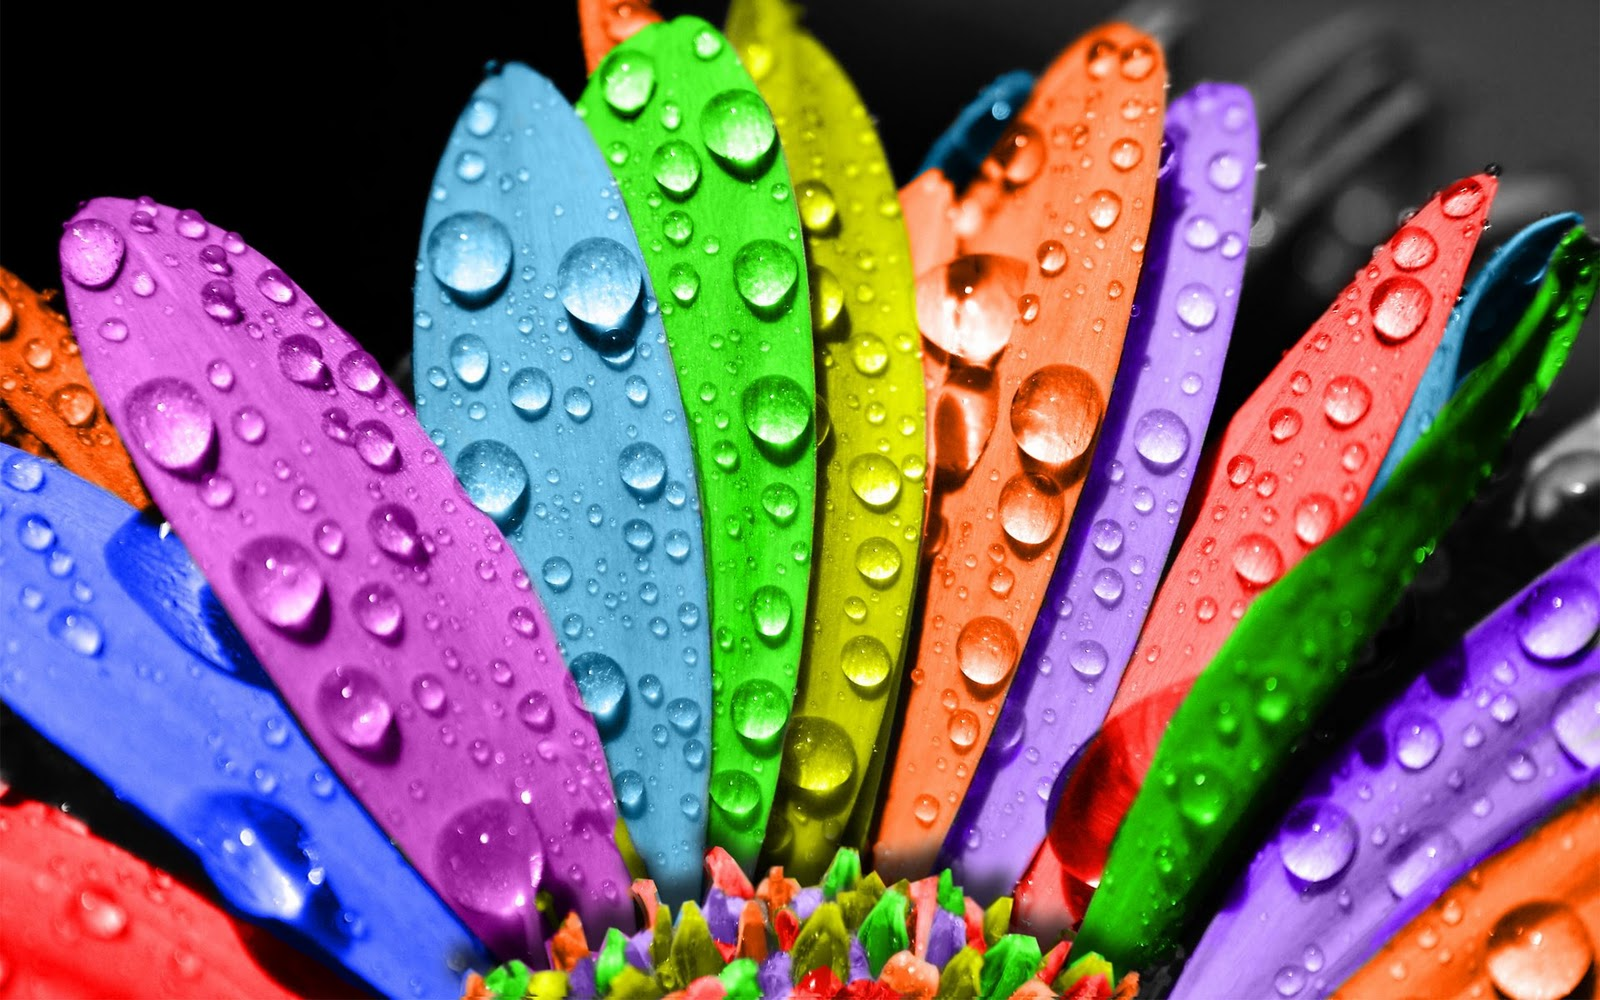 Cool Colorful Wallpaper Backgrounds: 40+ Most Beautiful And Cool Backgrounds For Your Desktop